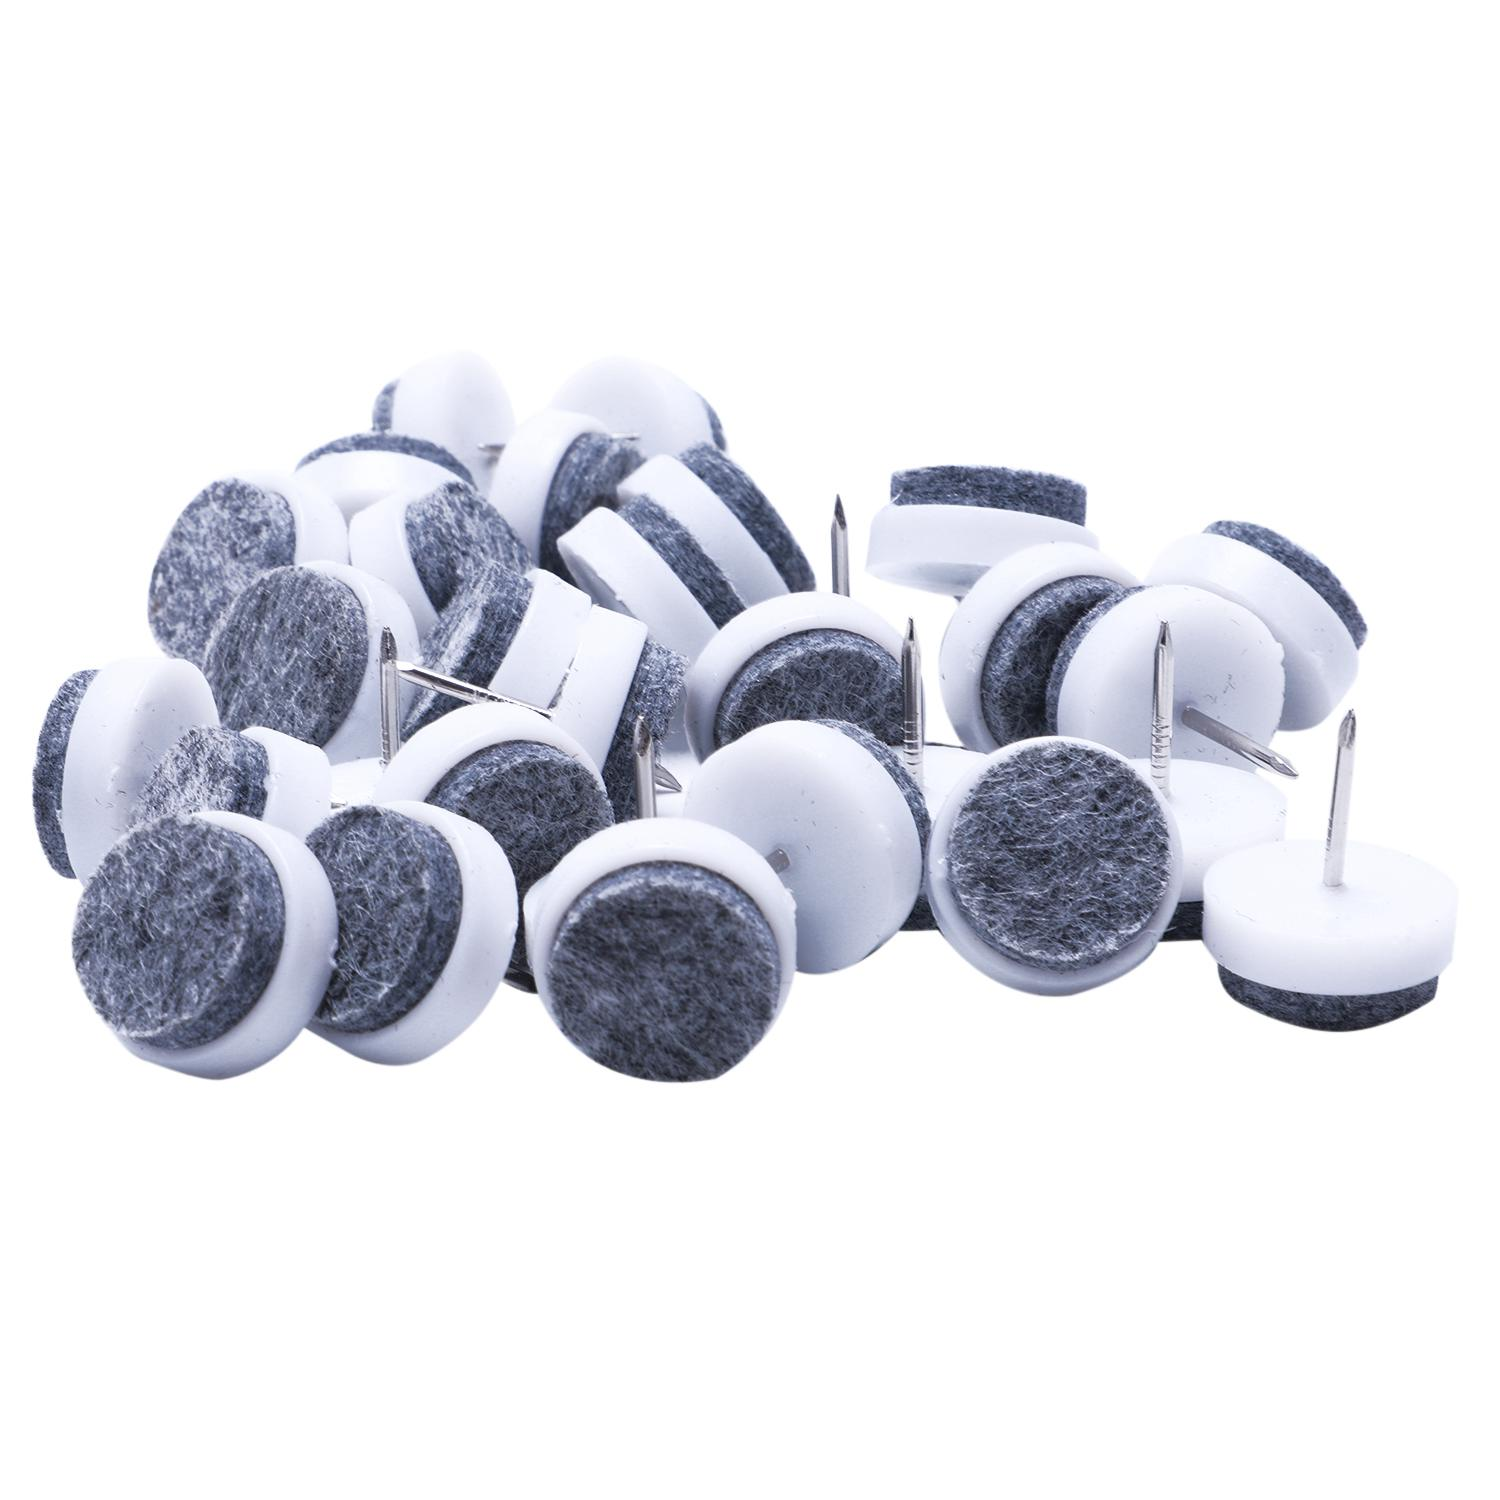 Promotion! Furniture Chair Sofa Feet Round Pads Nail Protectors  30PCS 22mm DiaPromotion! Furniture Chair Sofa Feet Round Pads Nail Protectors  30PCS 22mm Dia